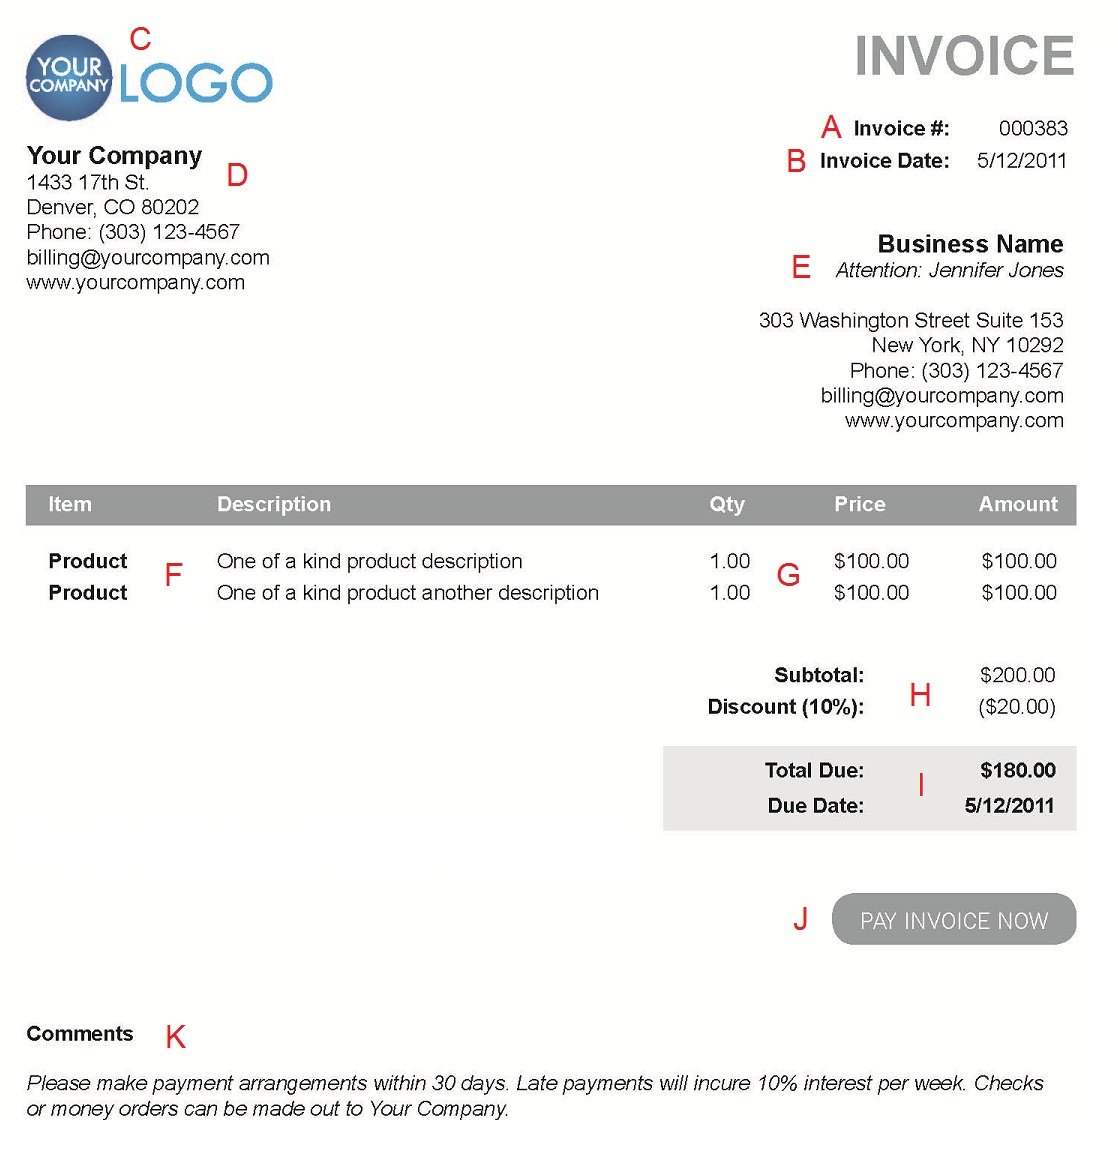 Ultrablogus  Sweet The  Different Sections Of An Electronic Payment Invoice With Fair A  With Breathtaking Sample Commercial Invoice Template Also Online Invoice Pdf In Addition What Is Invoice Discounting And Sample Of Invoices For Services As Well As Excel  Invoice Template Additionally Recipient Created Tax Invoice Example From Paysimplecom With Ultrablogus  Fair The  Different Sections Of An Electronic Payment Invoice With Breathtaking A  And Sweet Sample Commercial Invoice Template Also Online Invoice Pdf In Addition What Is Invoice Discounting From Paysimplecom